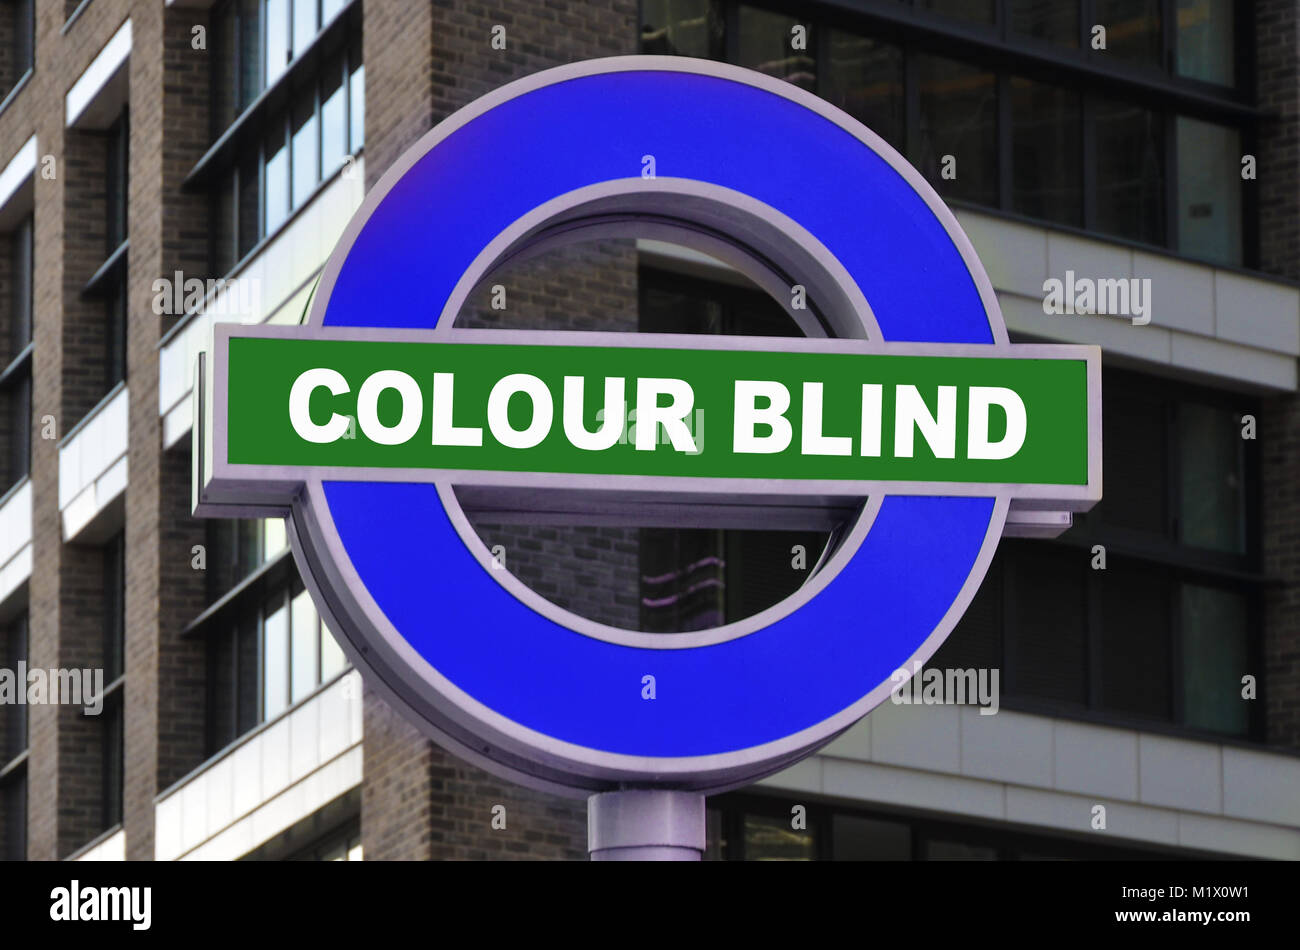 colour blind, visual difficulty, disability and accesses, optical, problems - Stock Image